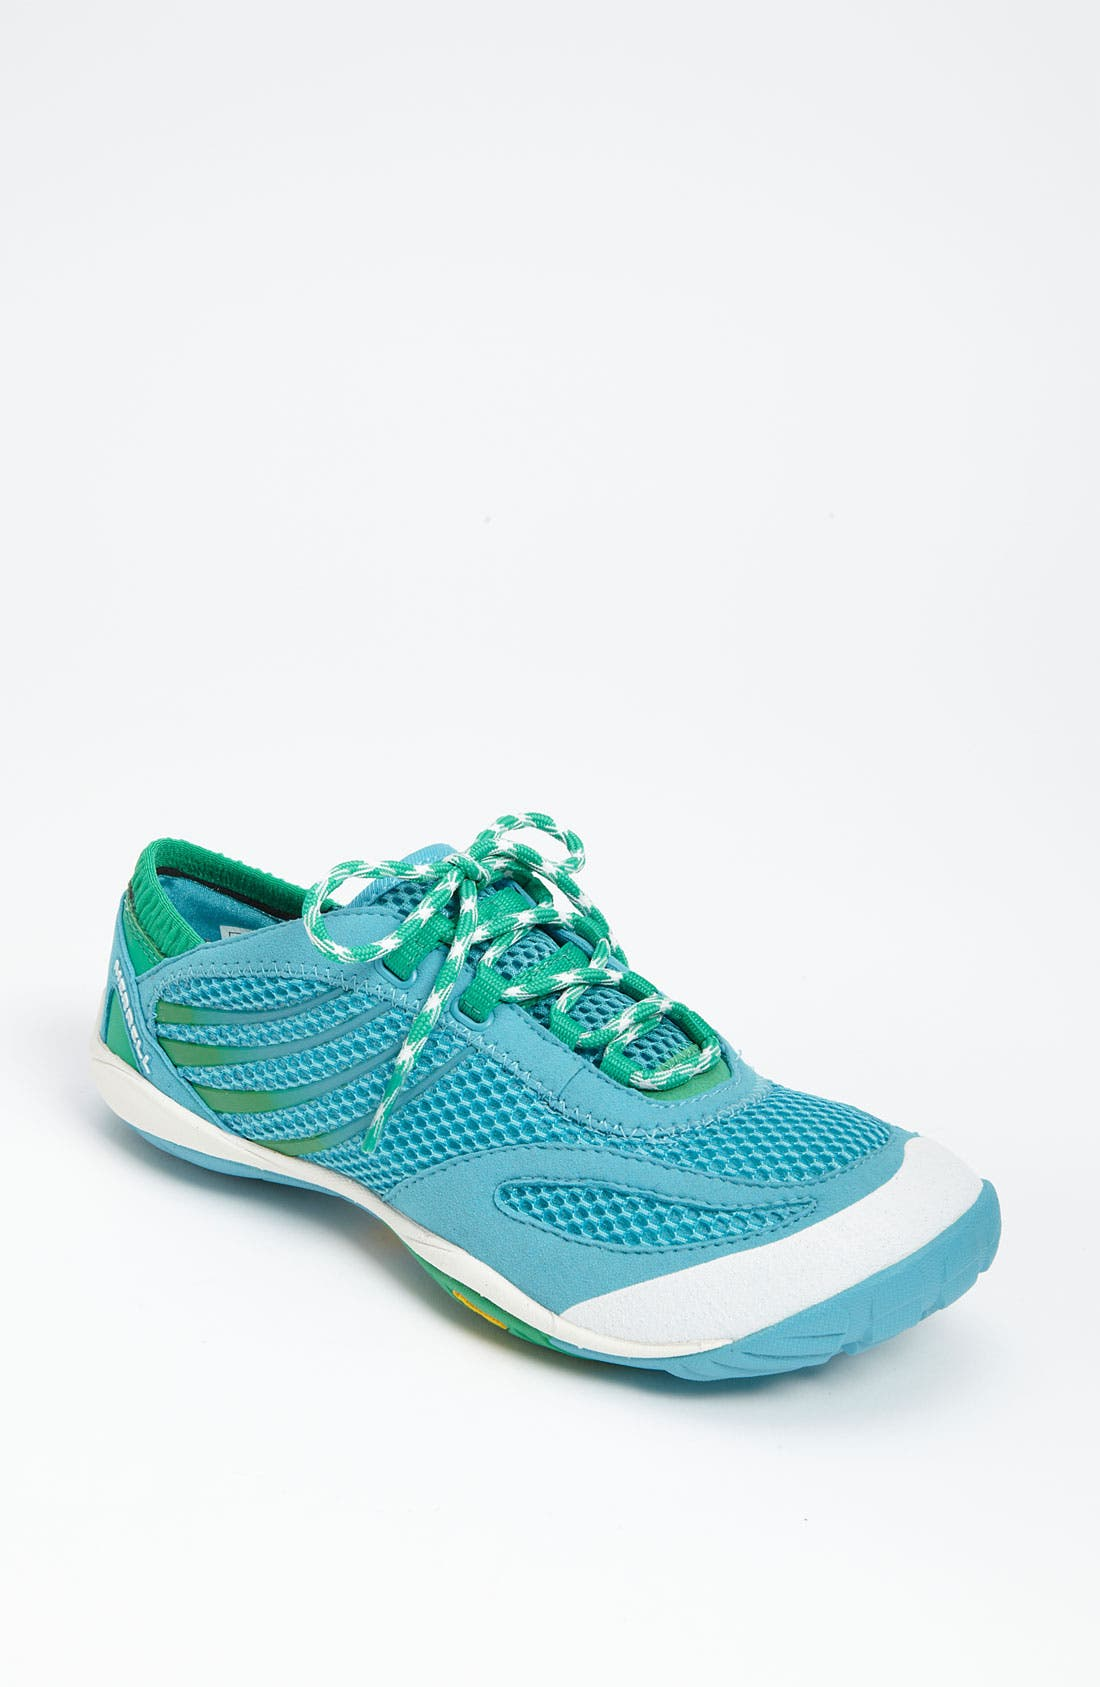 Main Image - Merrell 'Pace Glove' Running Shoe (Women)